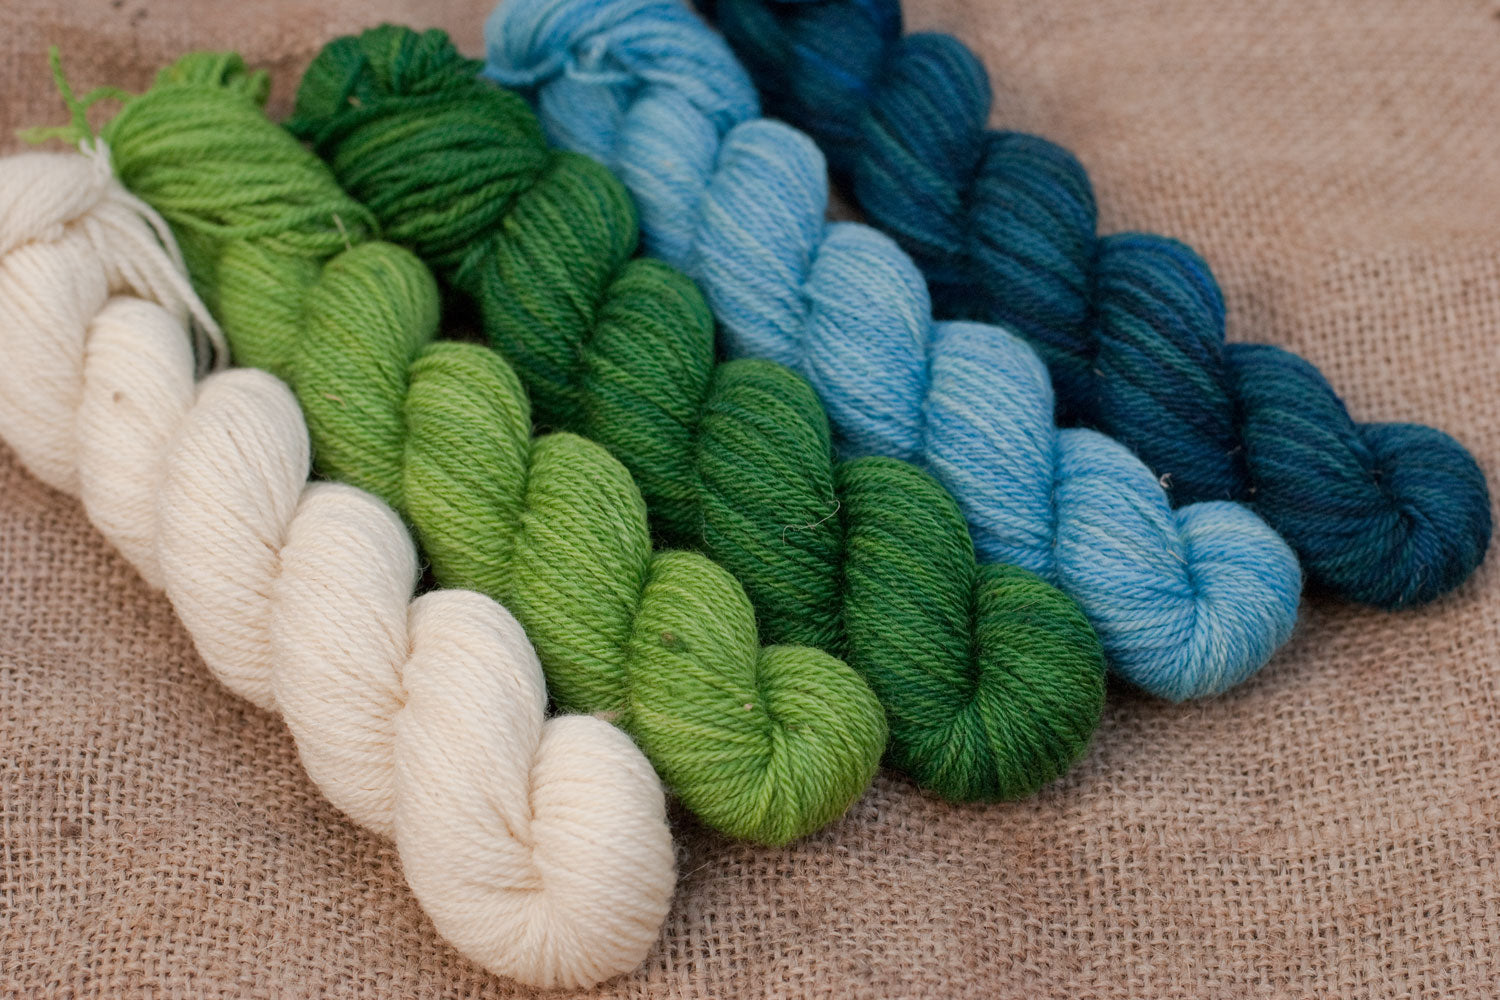 hunded acre wood mini-skein set: natural, bright green, medium green, bright blue and medium blue